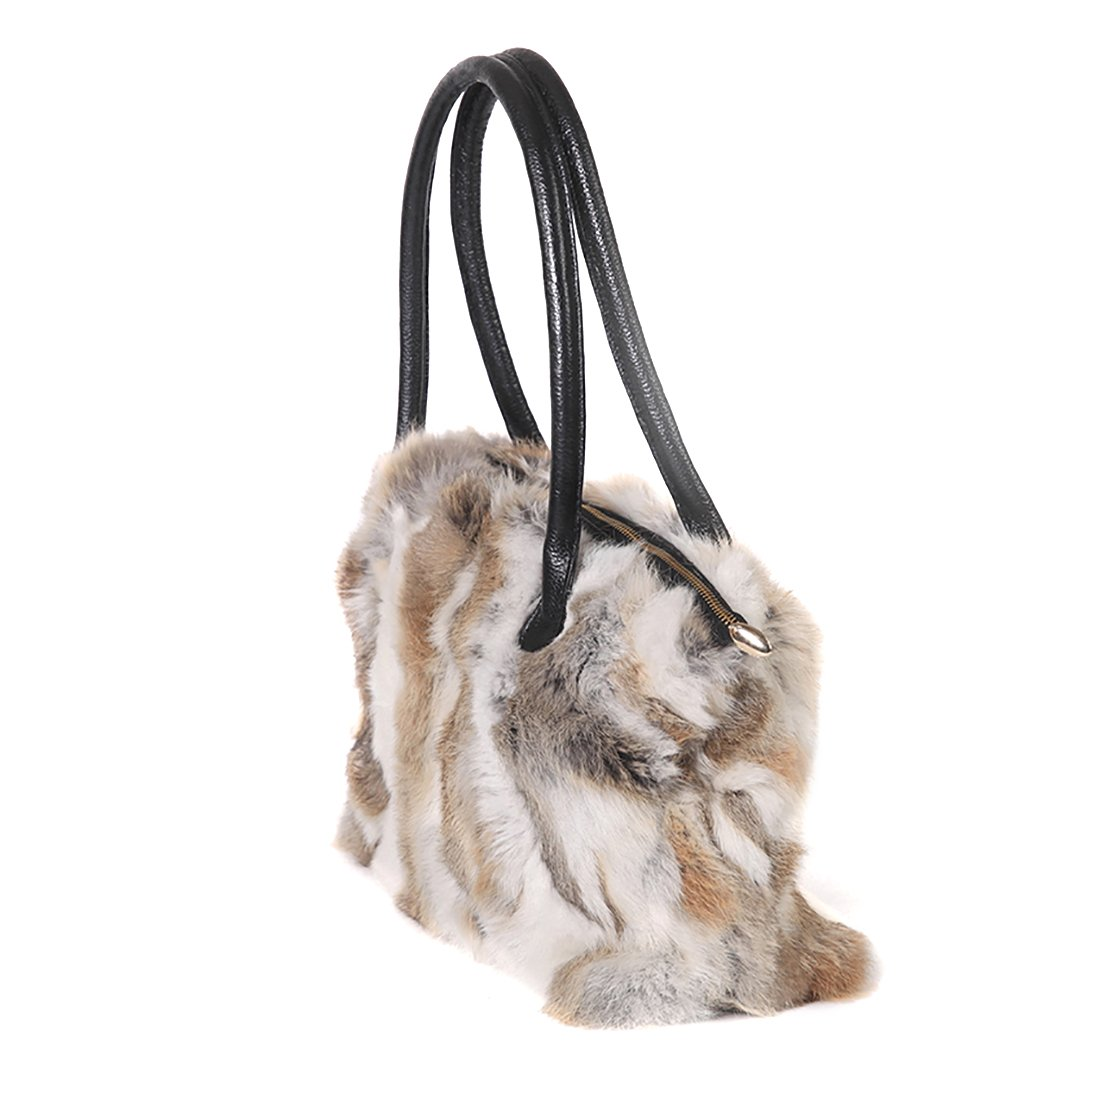 GCID-BAO06-1 URSFUR Winter Shoulder Bag Women Real Rabbit Fur Handbag Wristlet Clutch Purse Shijiazhuang Starway Imp/&Exp Trading Co .Ltd